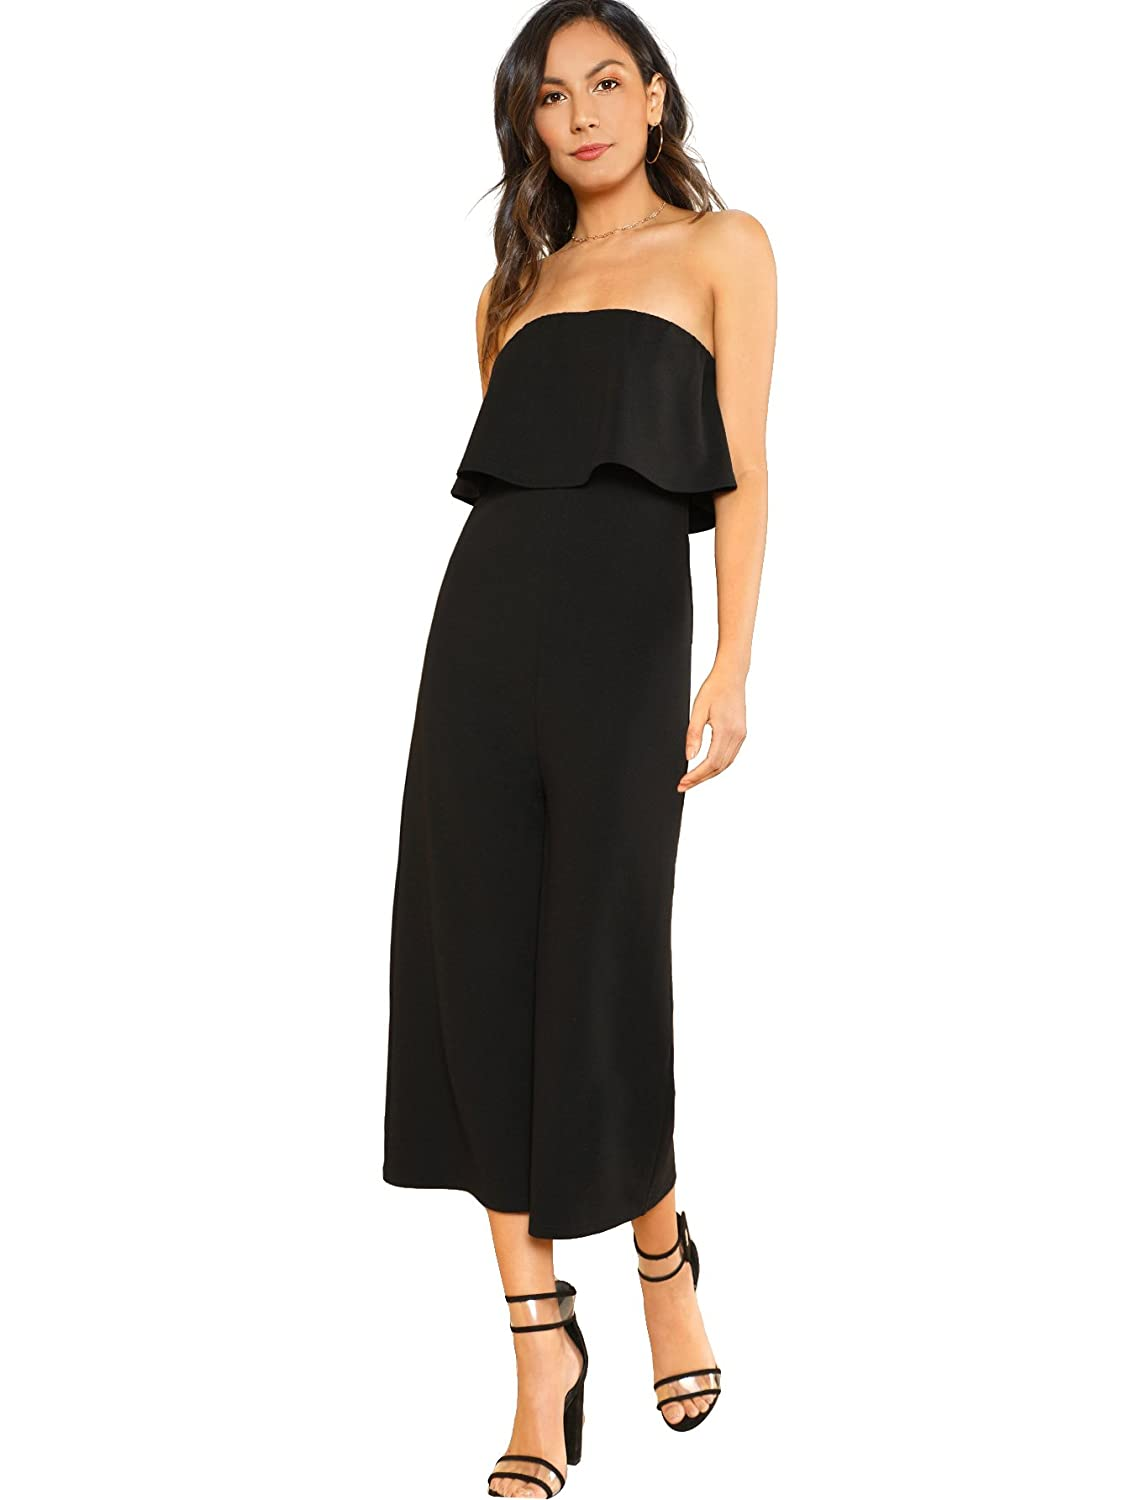 a668c3aaf Amazon.com: SheIn Women's Strapless Tube Top High Waist Wide Leg Flounce  Jumpsuit: Clothing